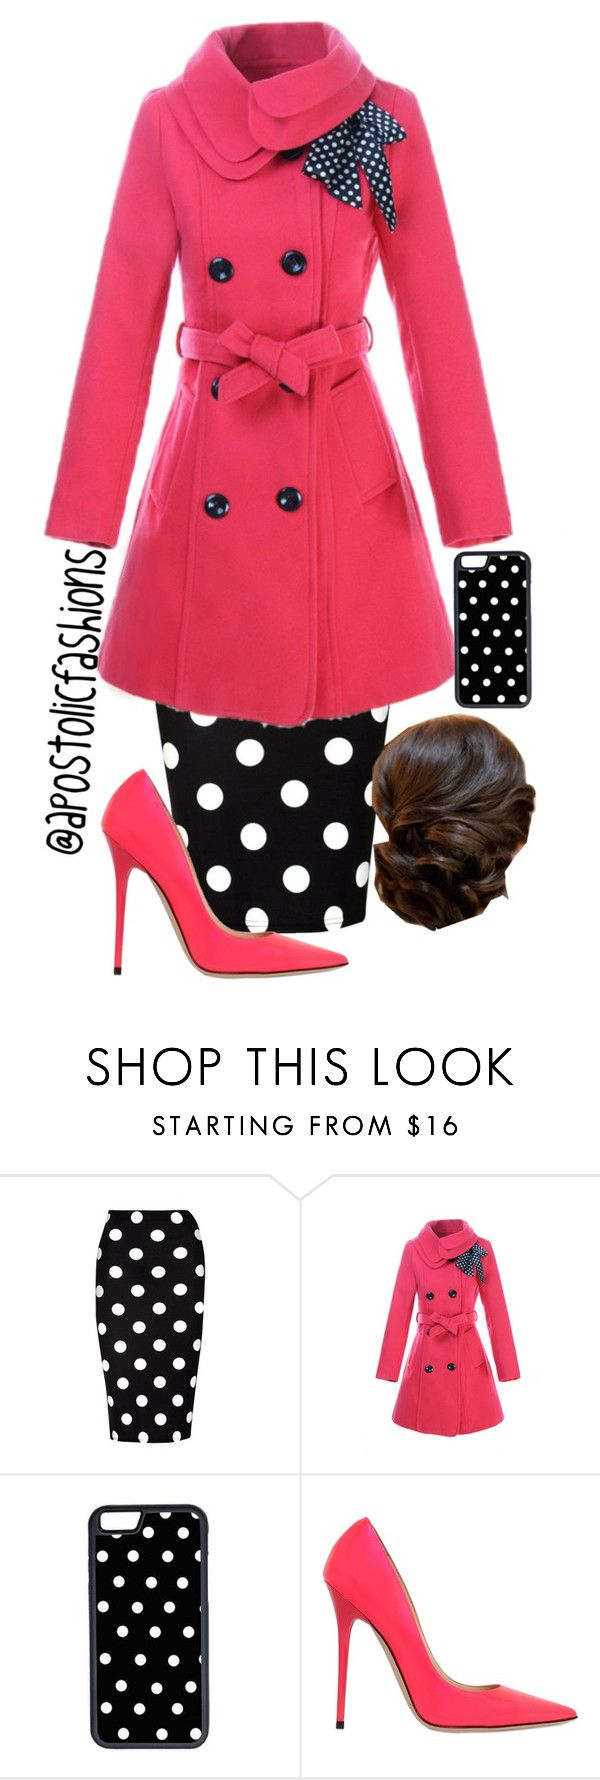 """Apostolic Fashions #879"" by apostolicfashions on Polyvore featuring So in Fashion, CellPowerCases and Jimmy Choo"